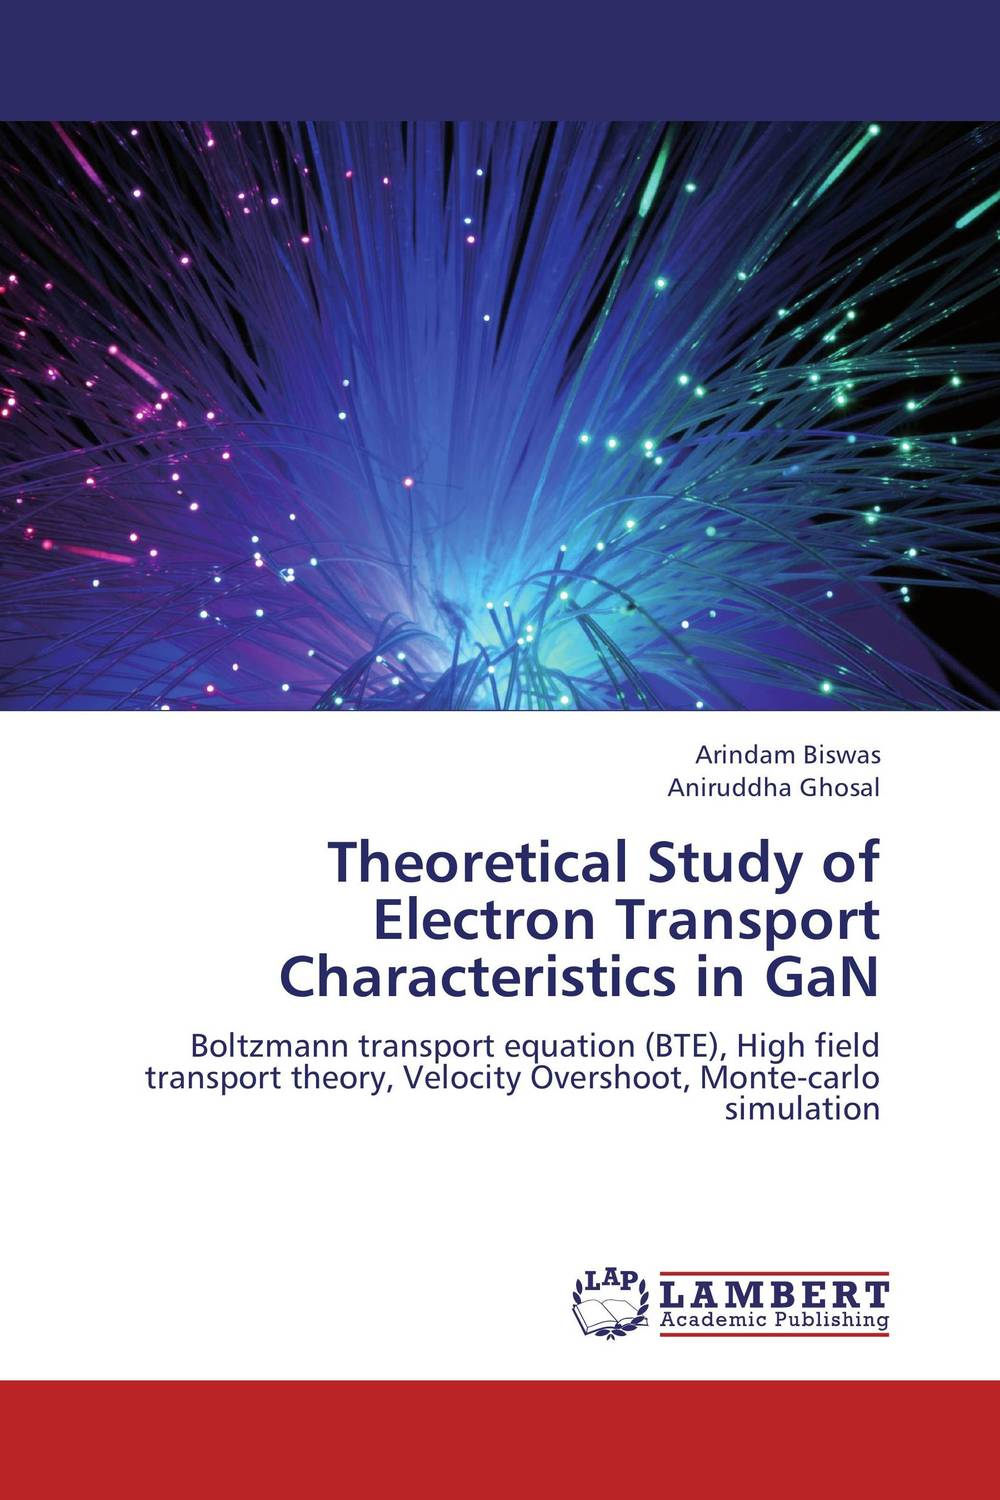 Theoretical Study of Electron Transport Characteristics in GaN electron ionization relevance to planetary atmospheres